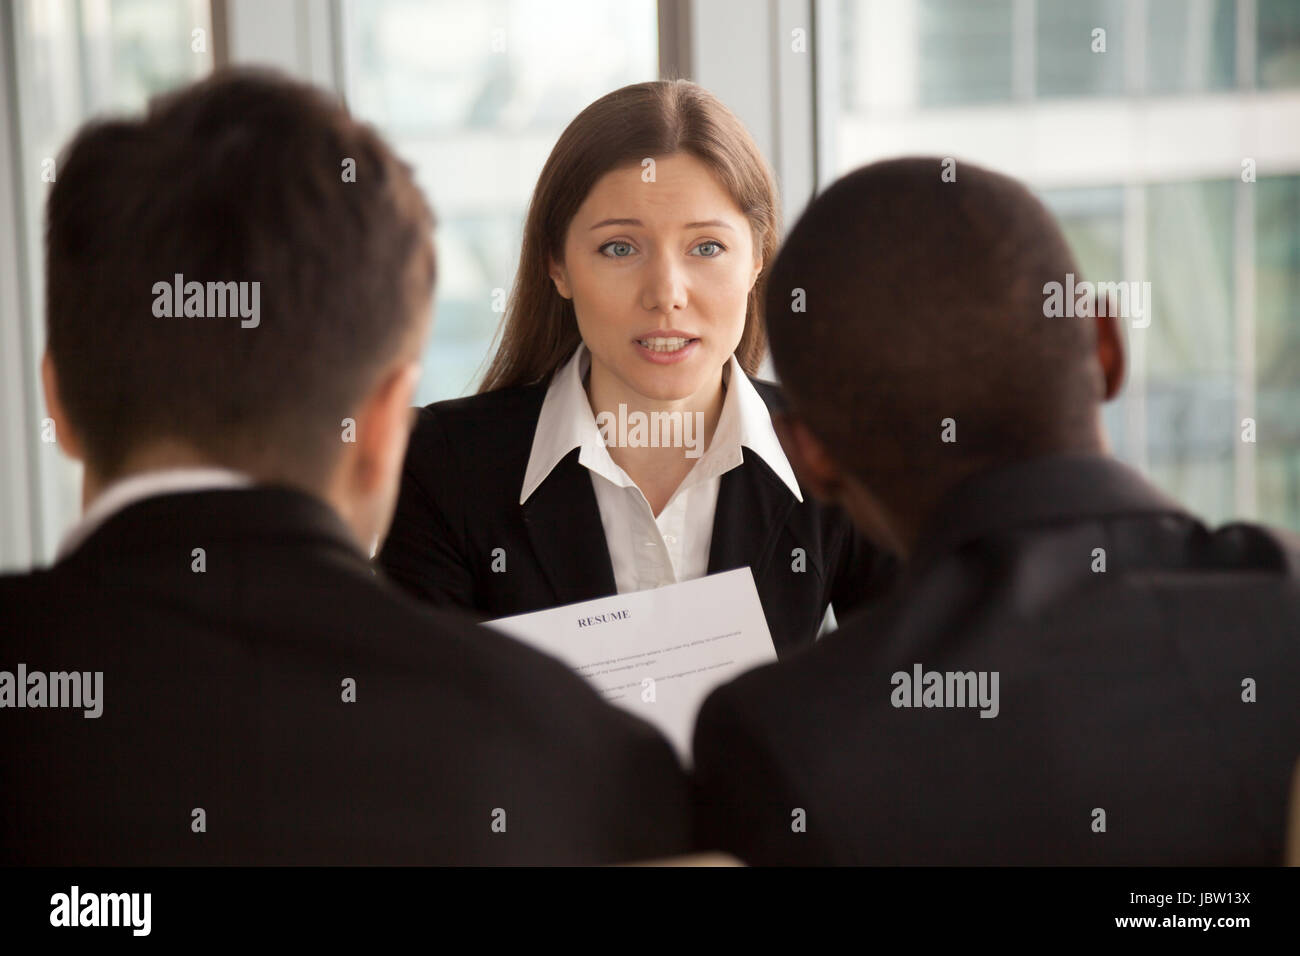 Female applicant introducing herself during job interview, talking about working experience, rear view at multiracial - Stock Image